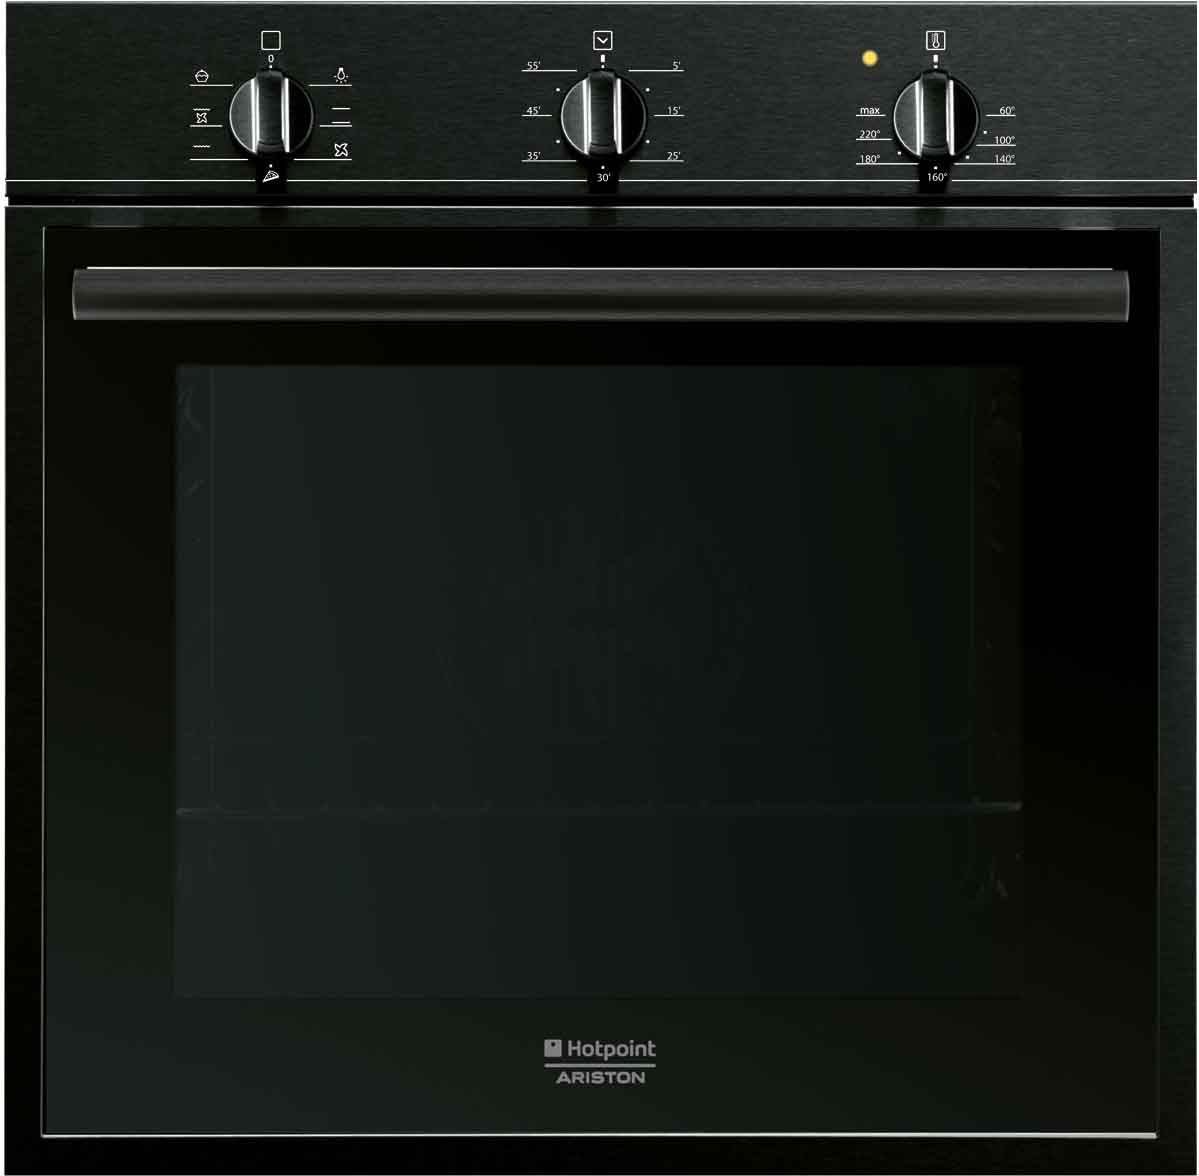 Forno ariston fk 61 an ha serie luce forno da incasso - Ariston forno da incasso ...